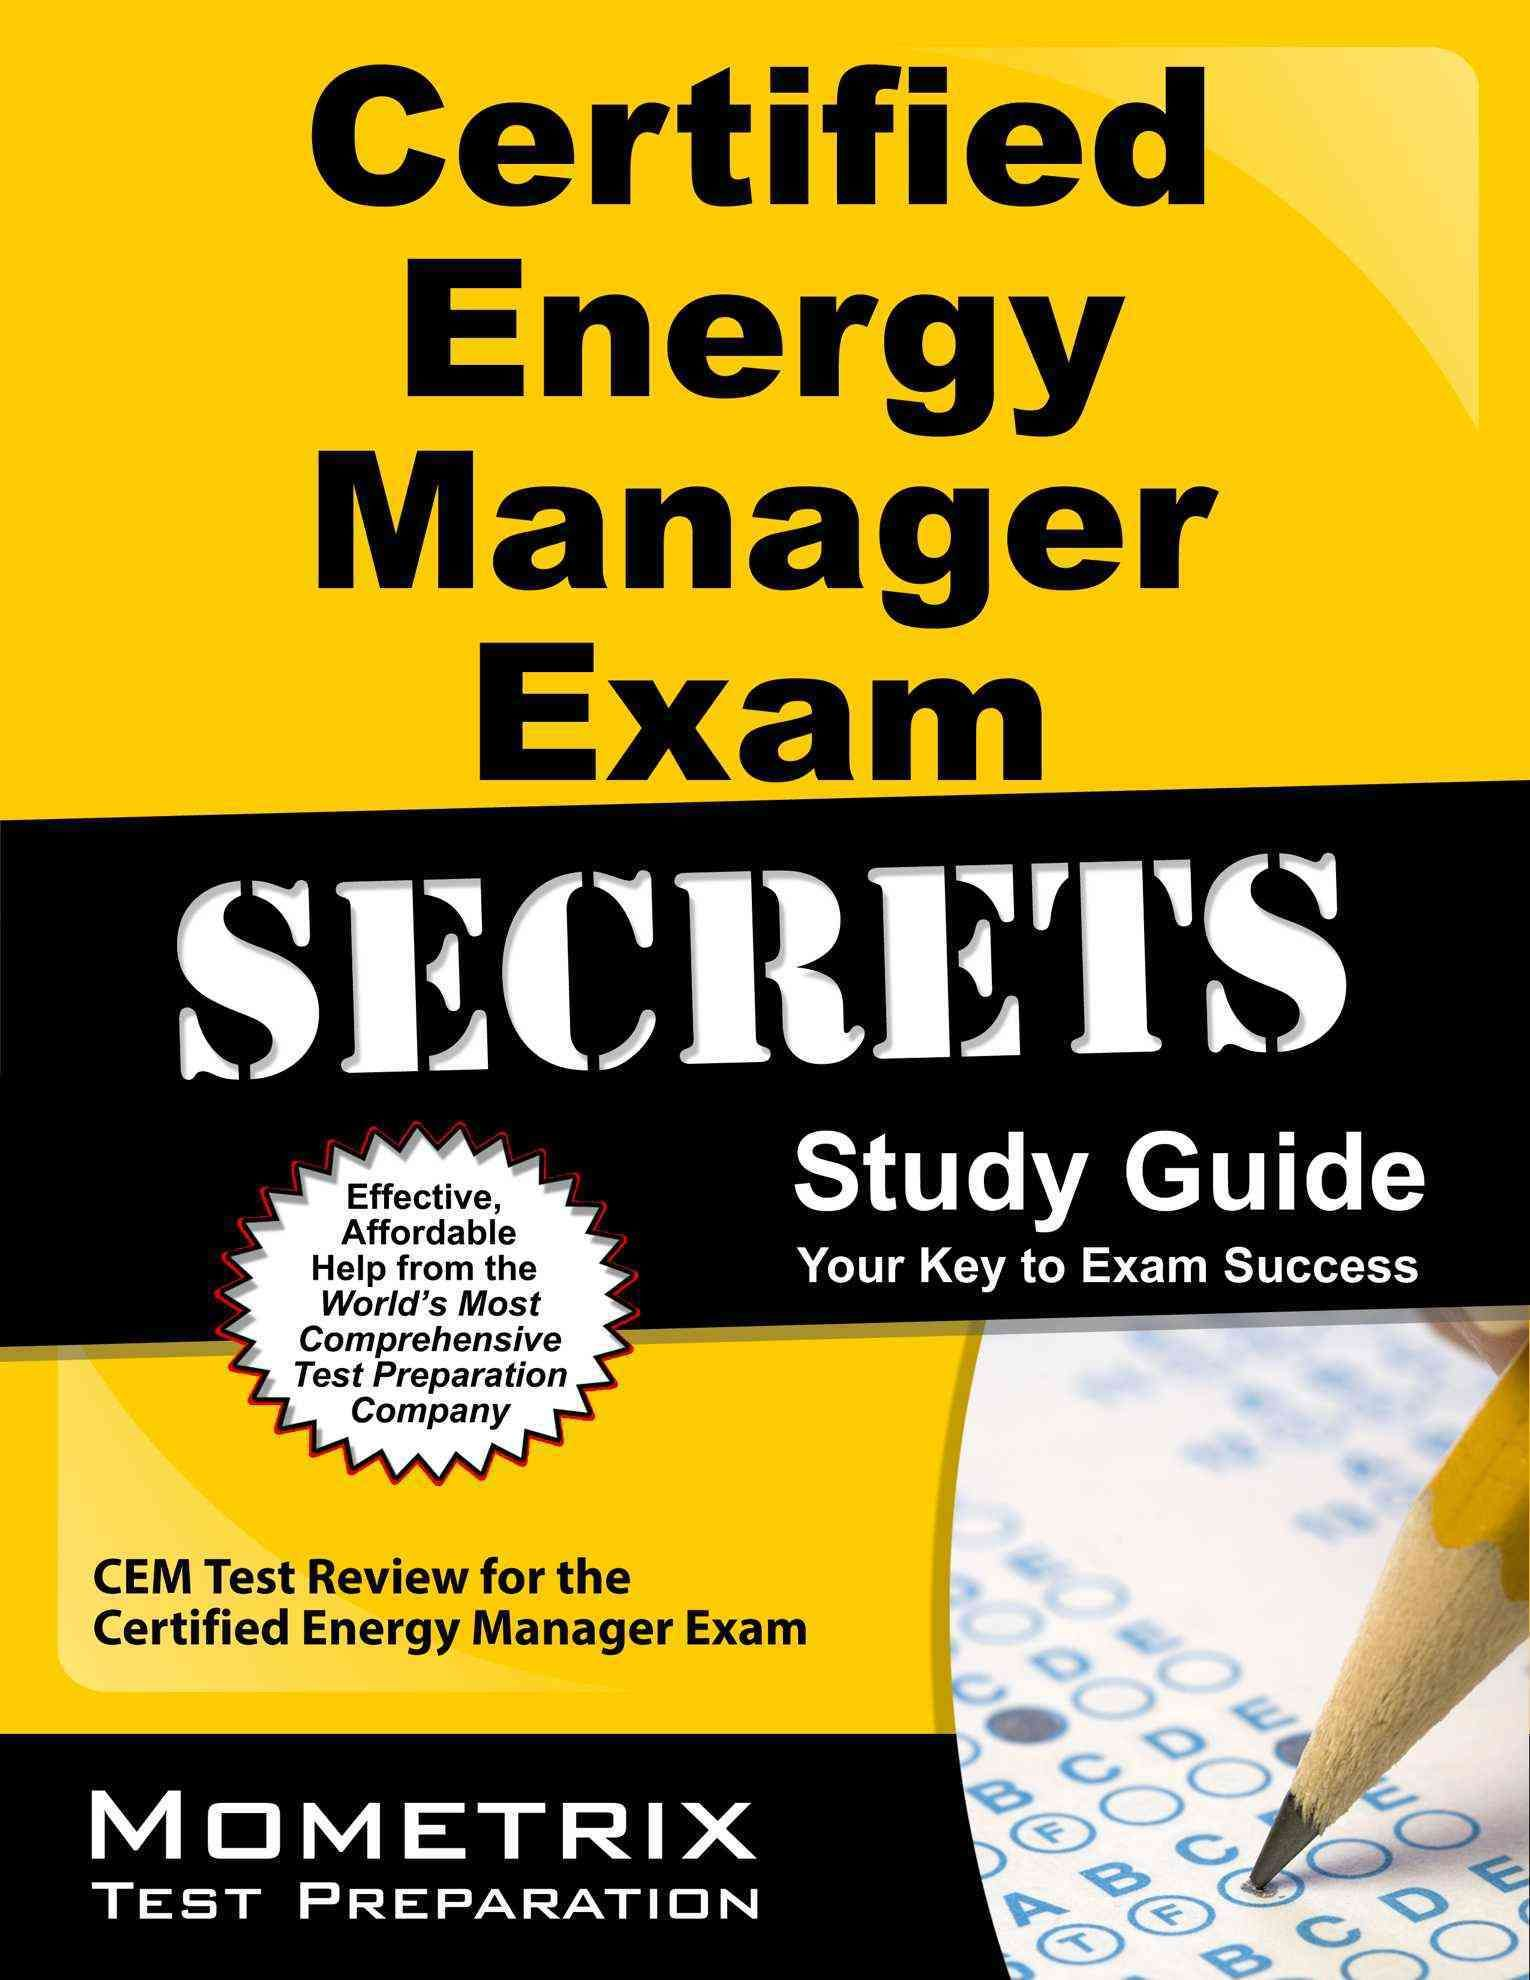 Certified Energy Manager Exam Secrets Study Guide: CEM Test Review for the Certified  Energy Manager Exam, Your Ke.